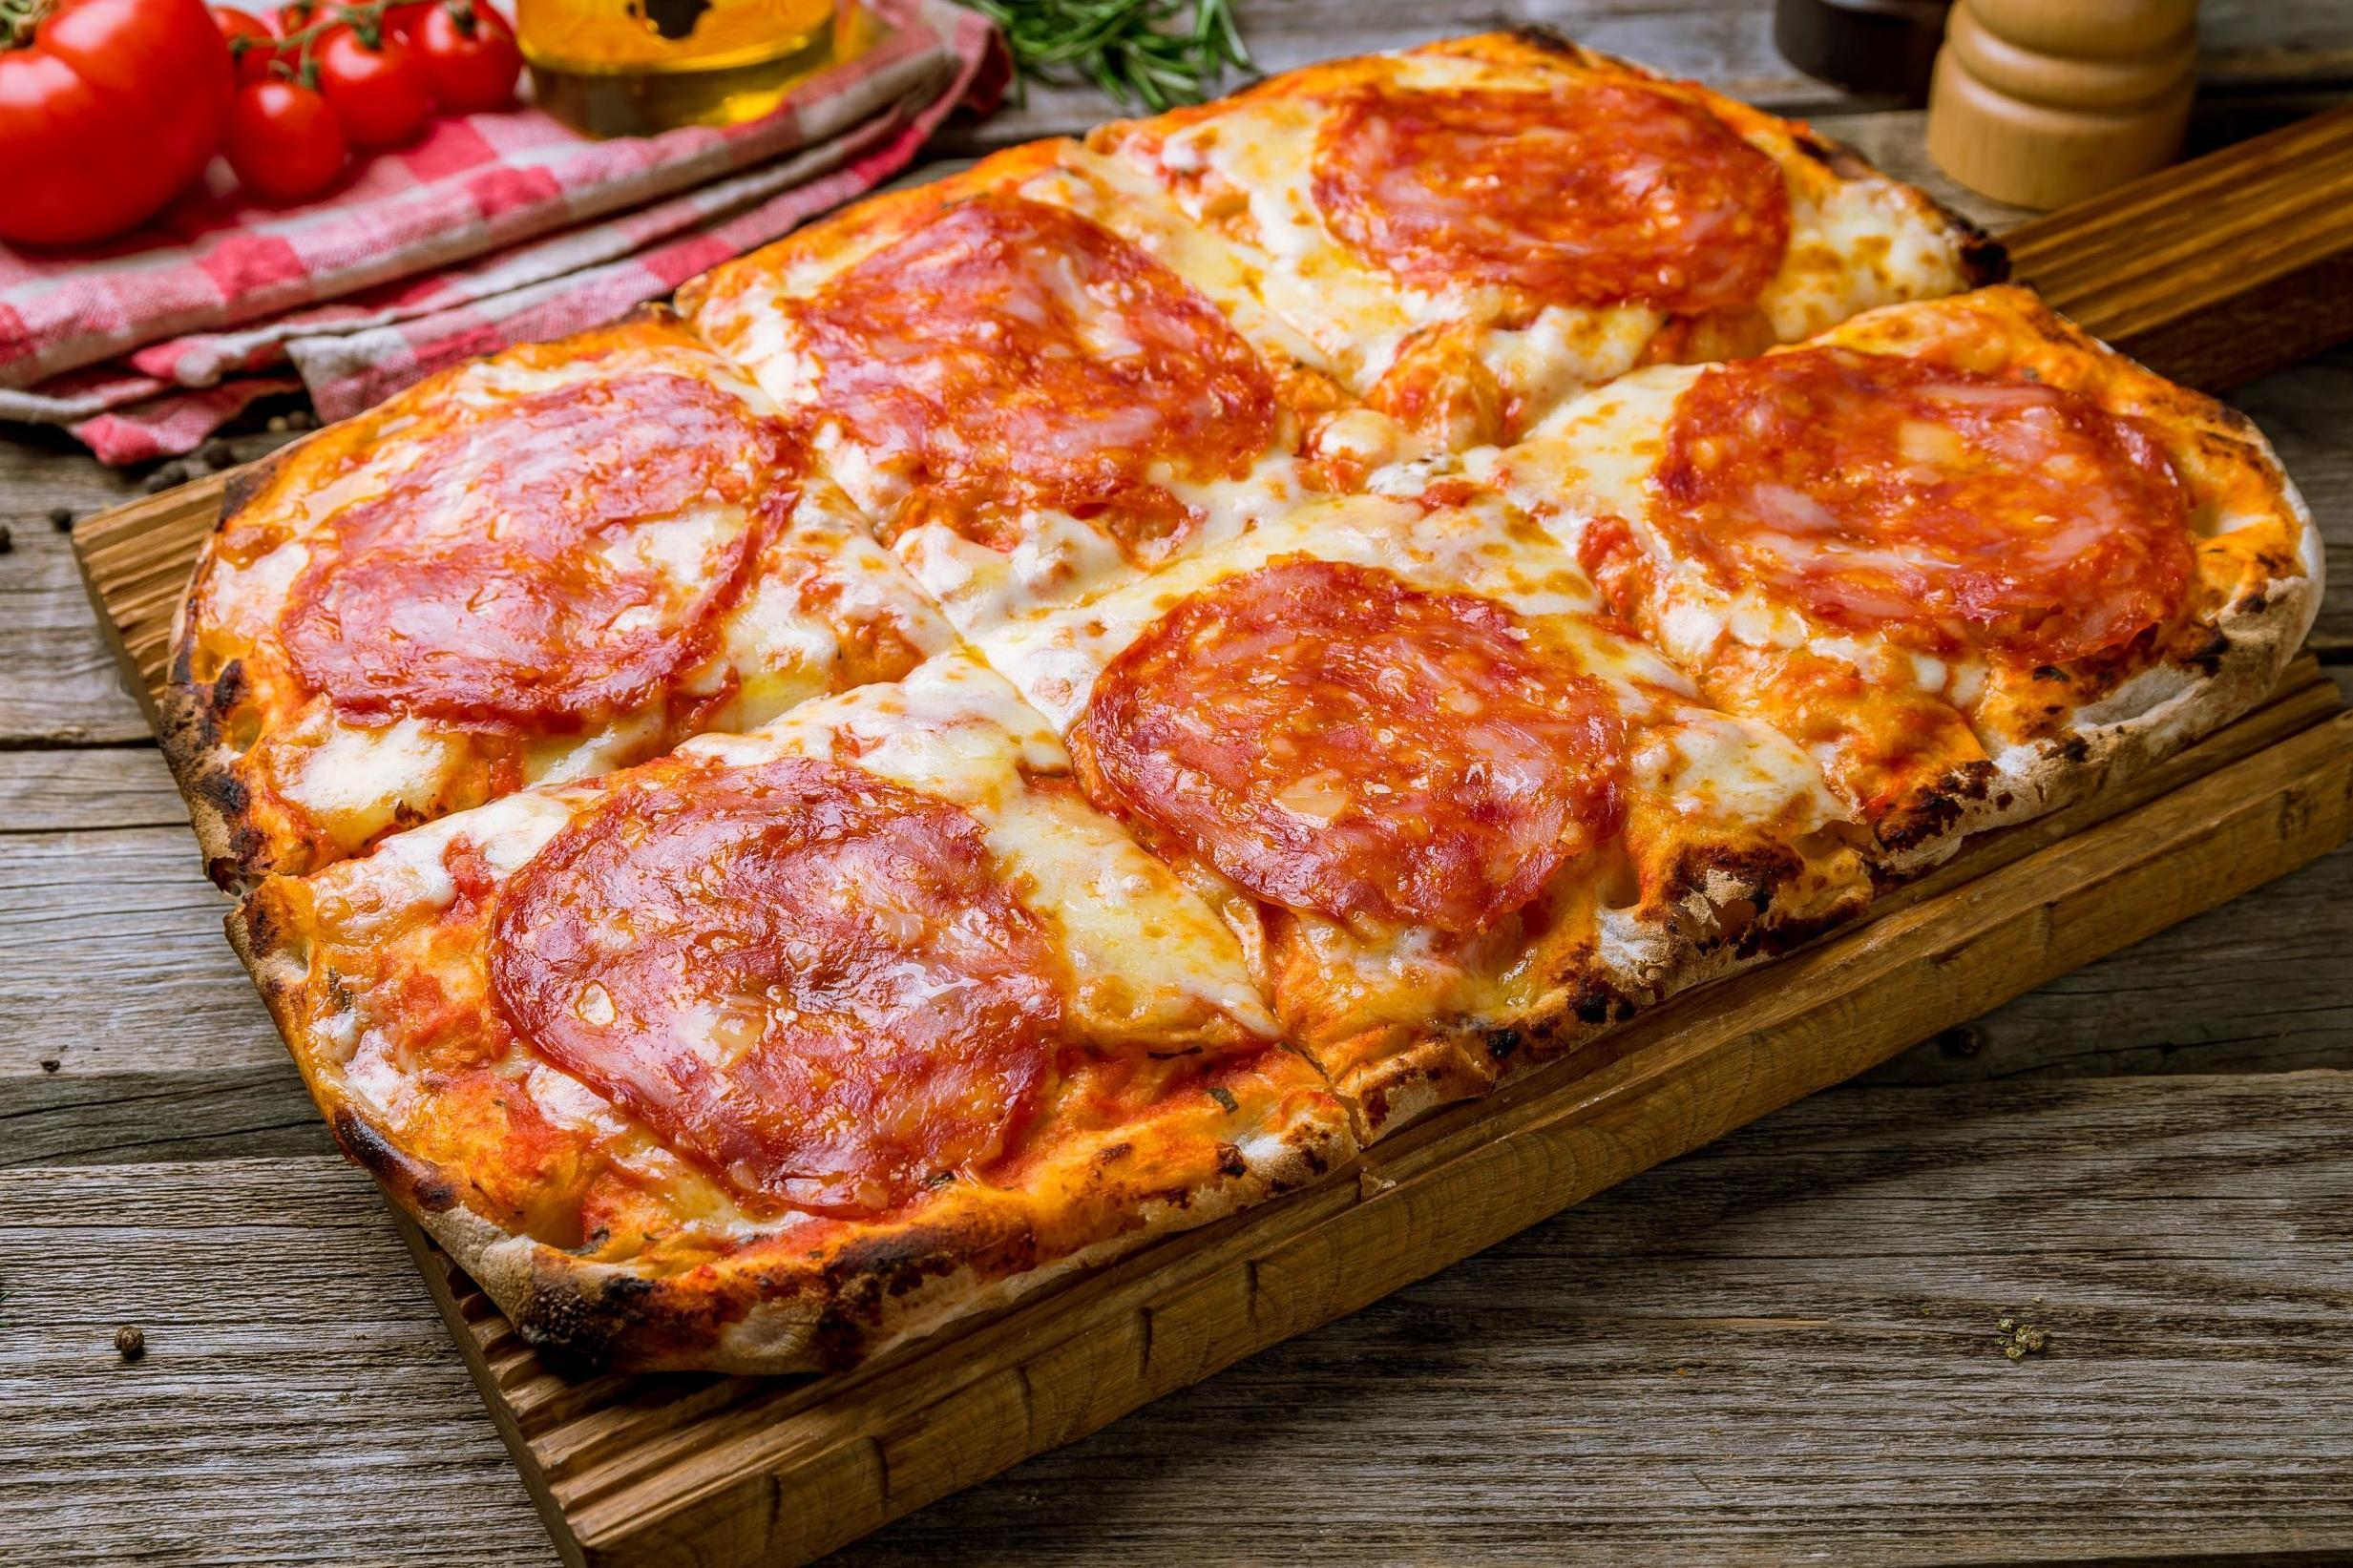 What is the pinsa pizza trend and where did it come from?